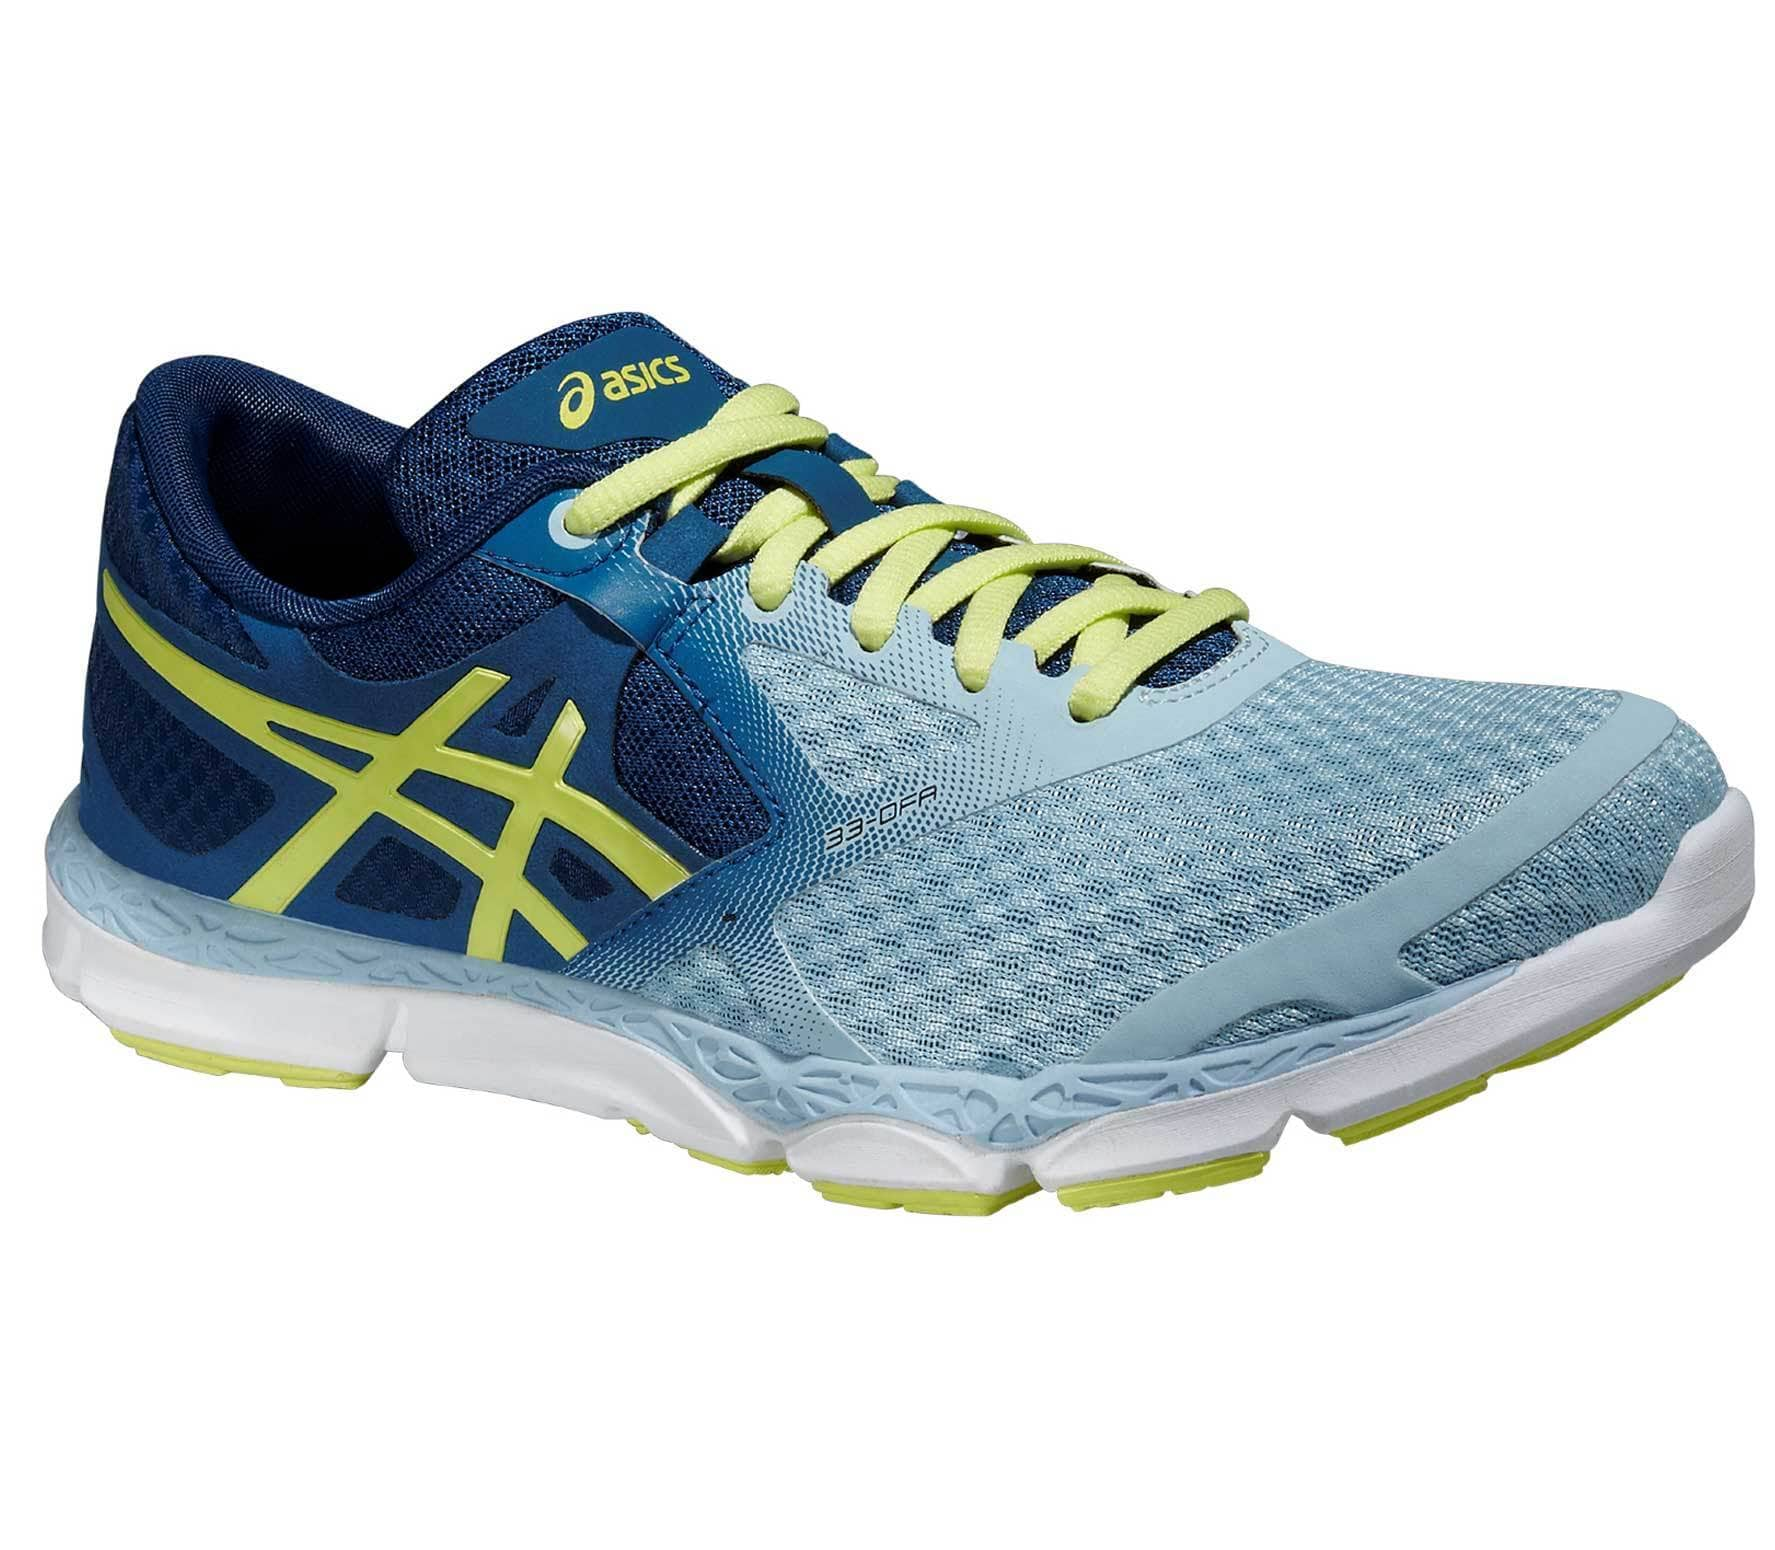 ASICS 33 DFA women's running shoe Damen